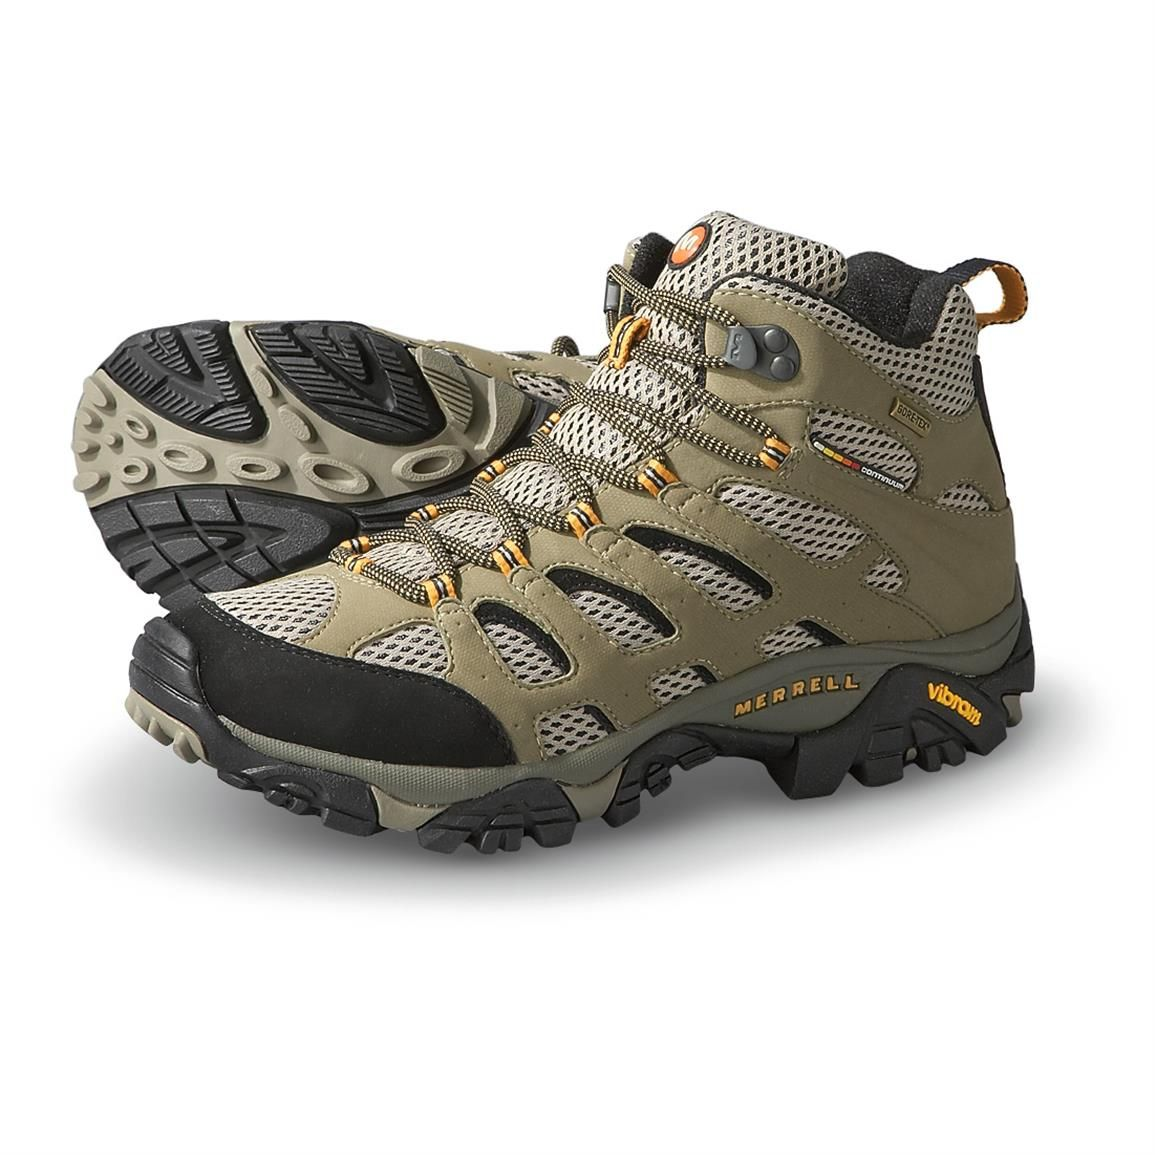 Merrell GORE-TEX XCR Men's Moab Mid Hiking Boots, Dark Tan - 135190, Hiking  Boots & Shoes at Sportsman's Guide